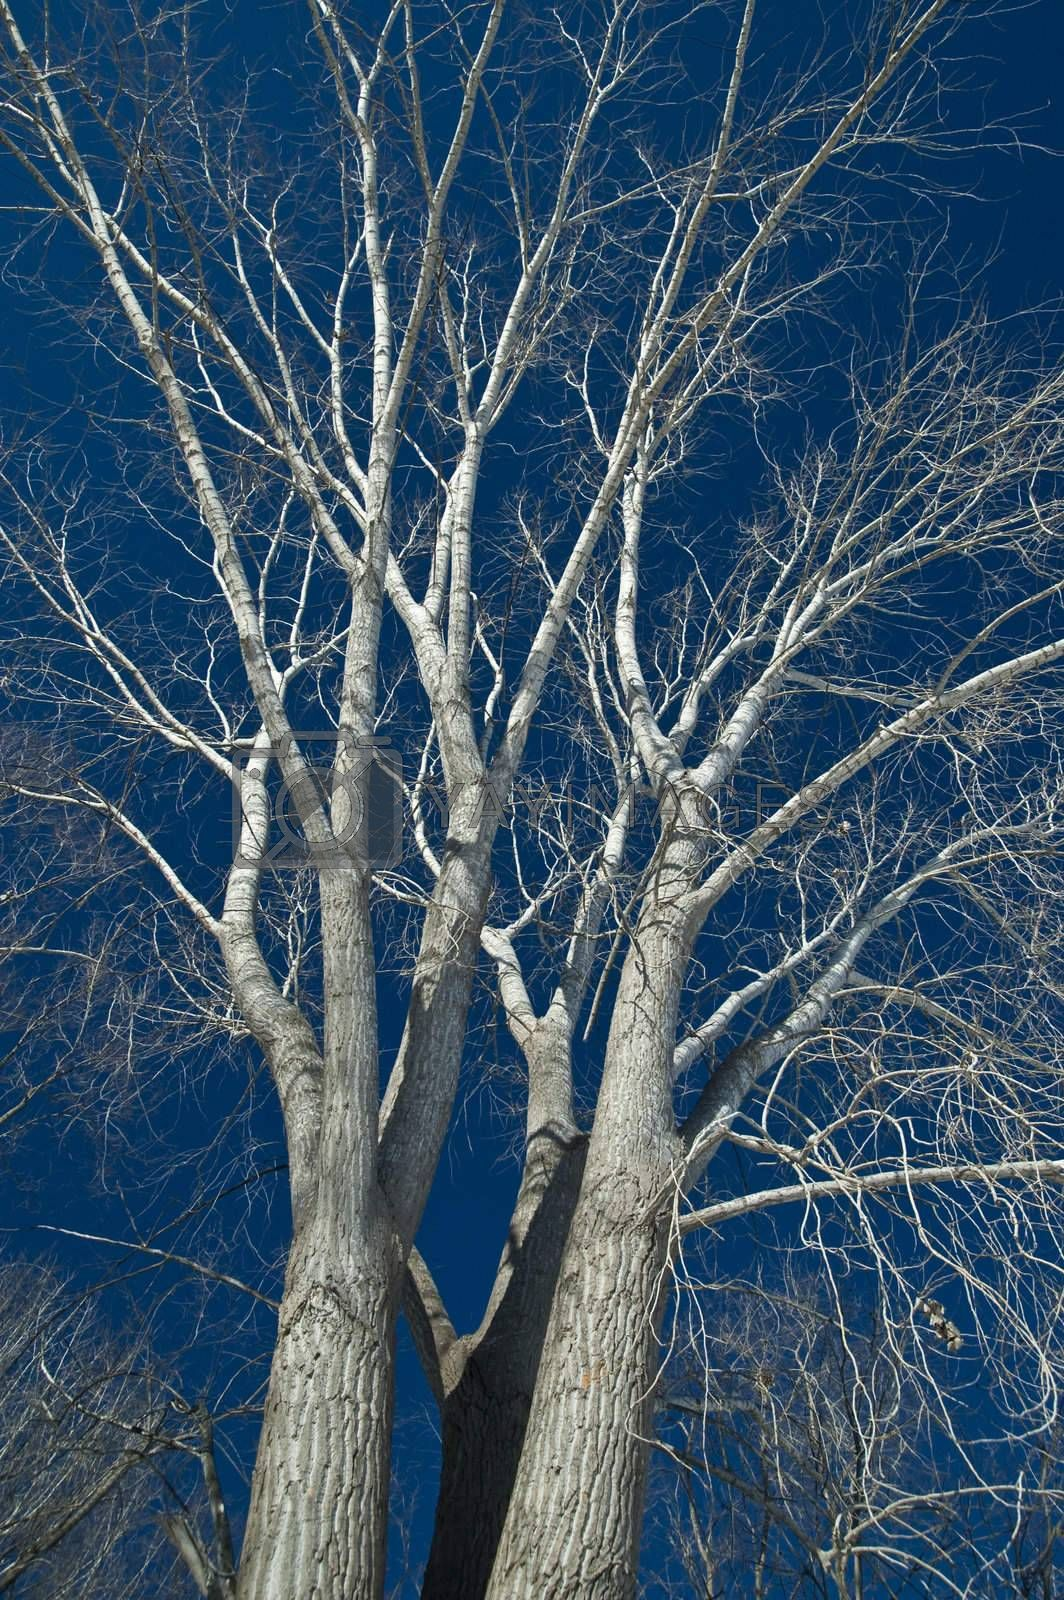 Royalty free image of Trees by vladikpod